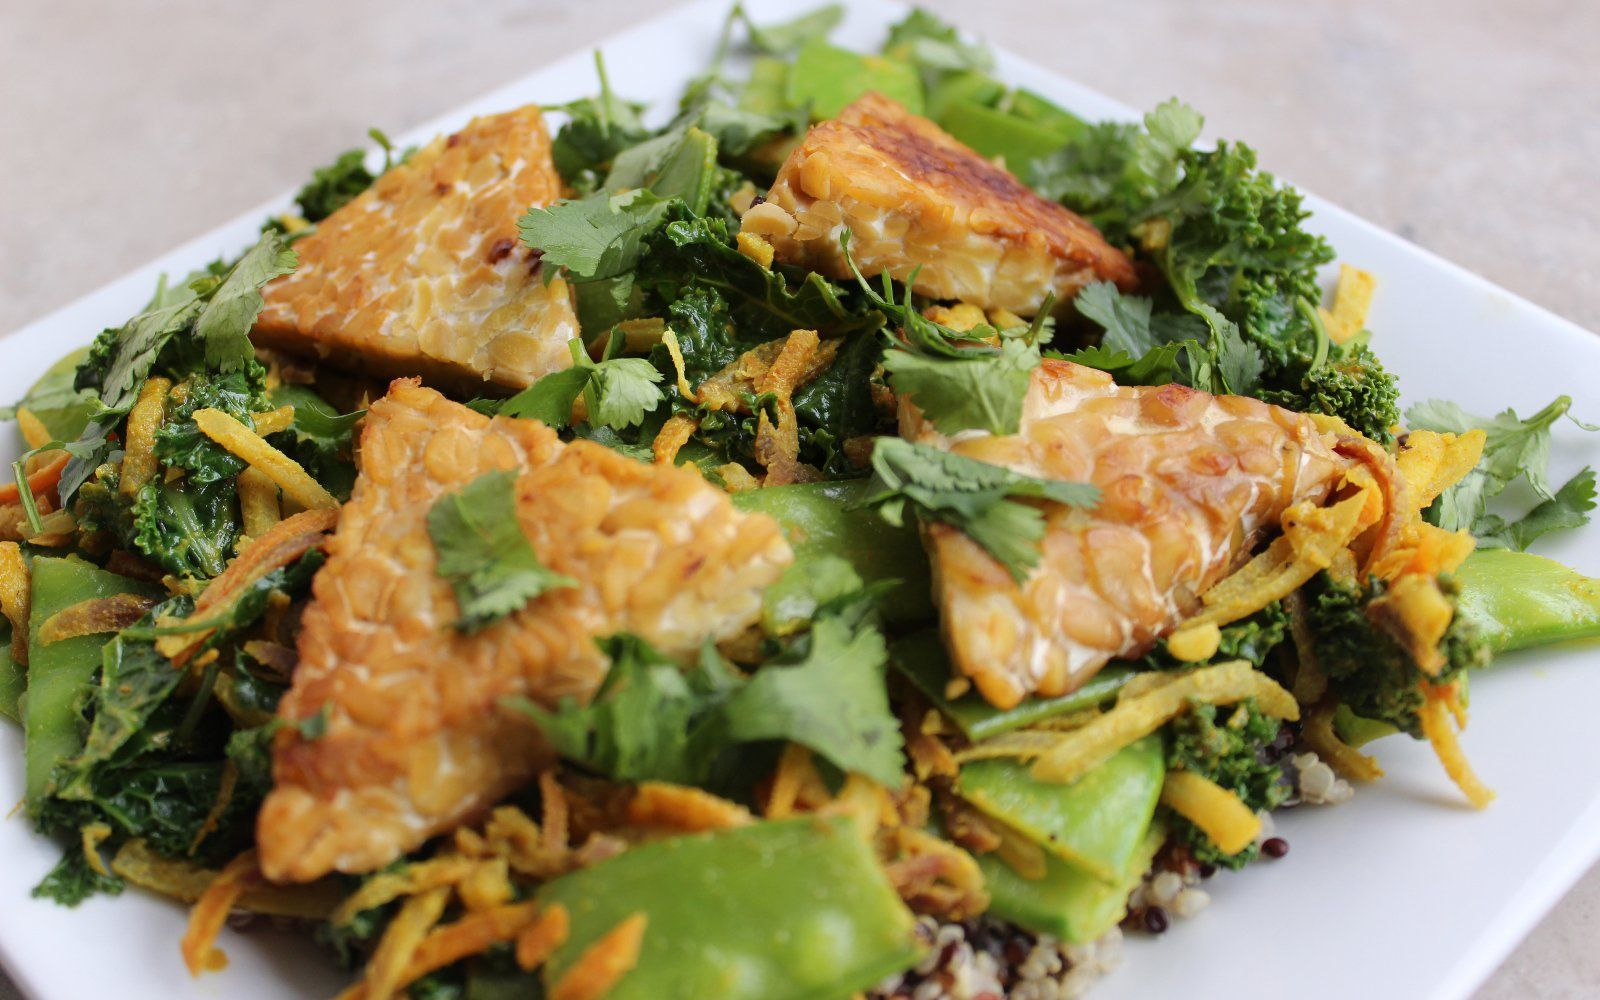 Curried Vegetables With Tempeh Triangles [Vegan, Gluten